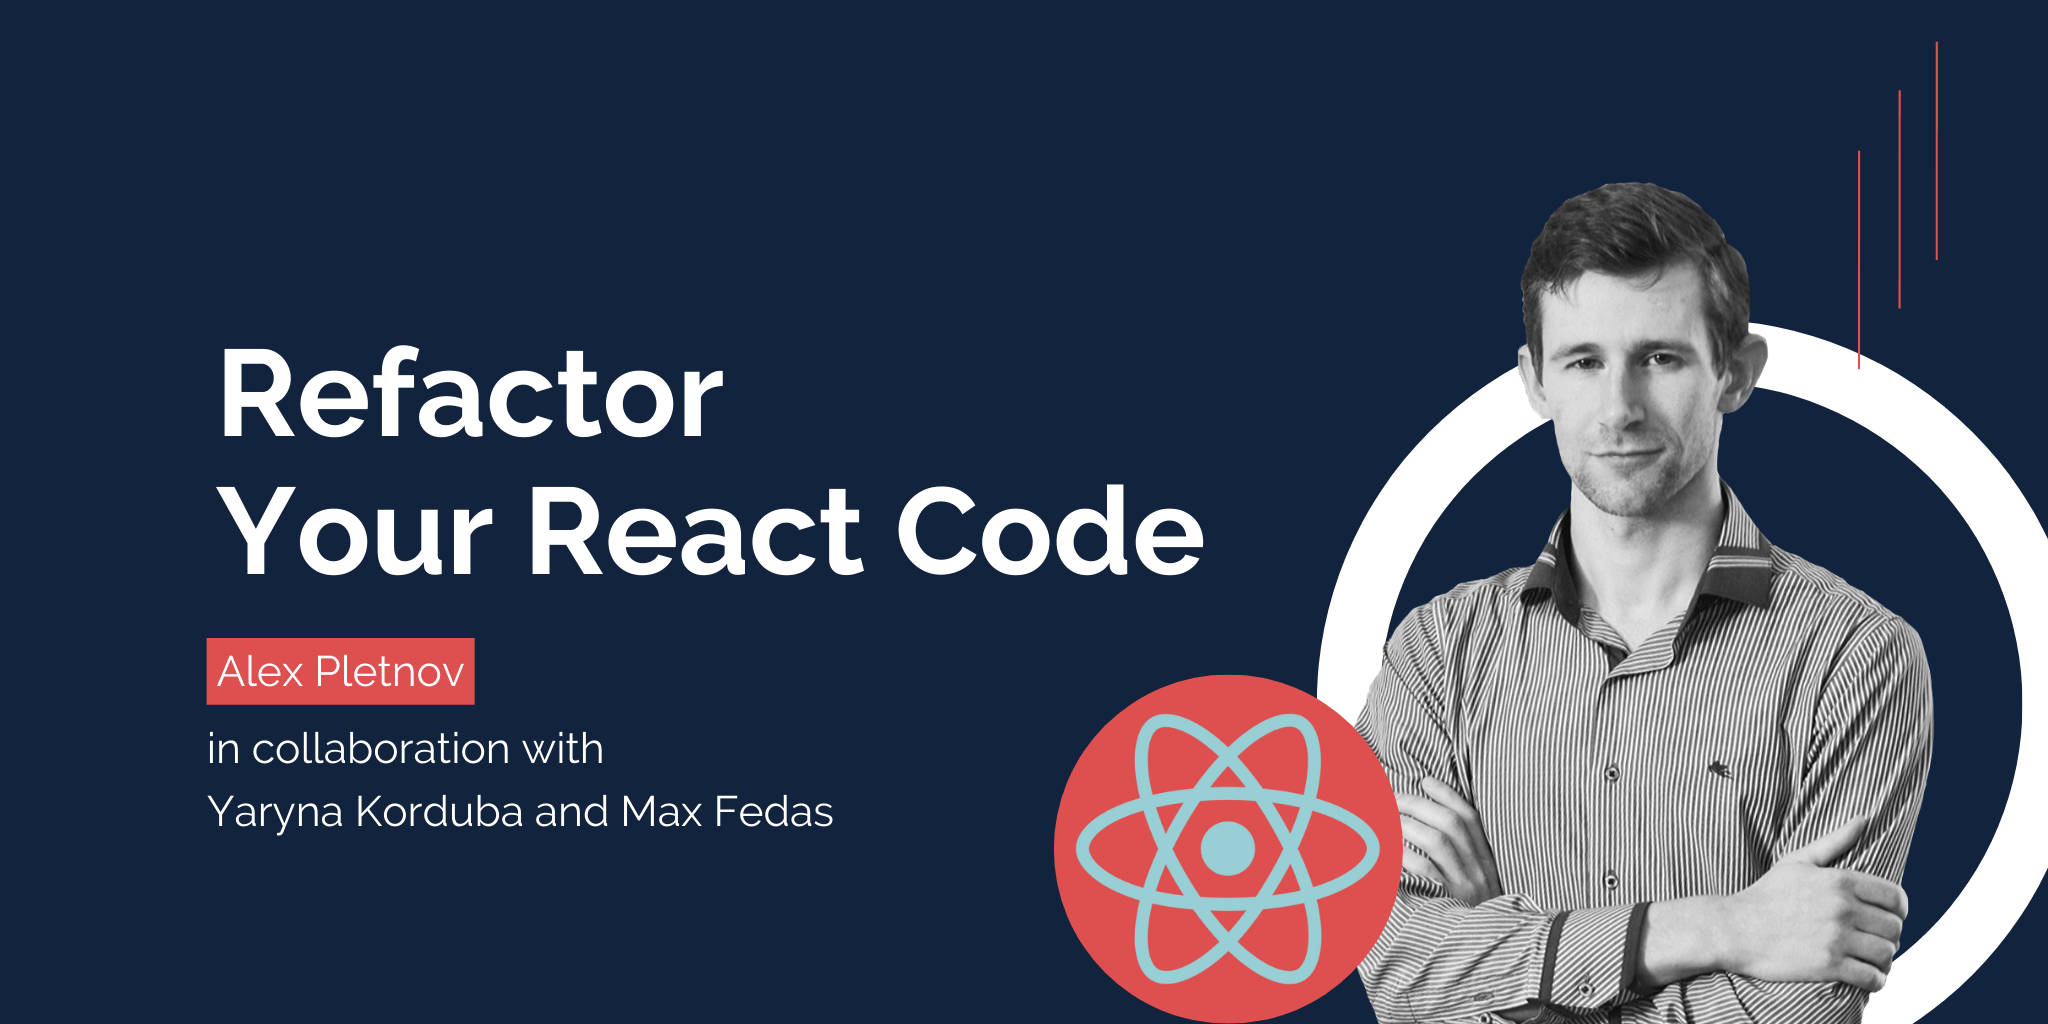 Why and How to Refactor Your React Code?